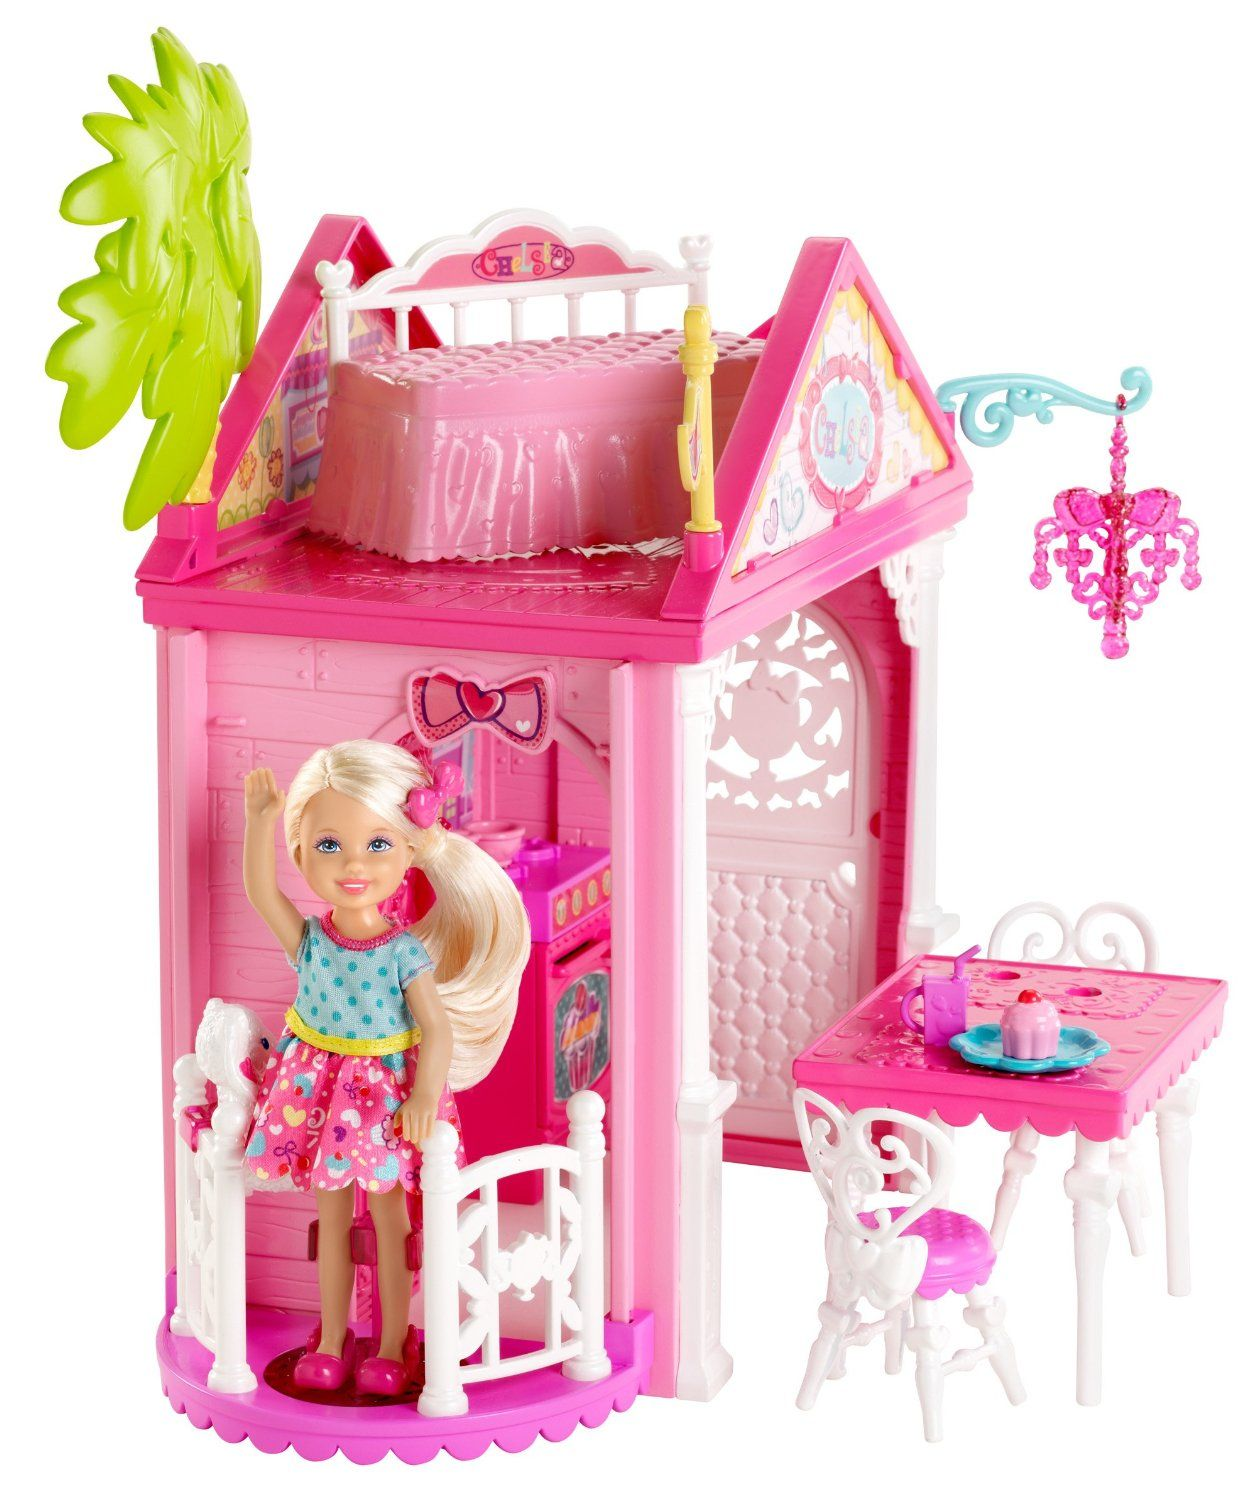 Barbie deluxe furniture stovetop to tabletop kitchen doll target - Barbie Chelsea Doll And Clubhouse Playset